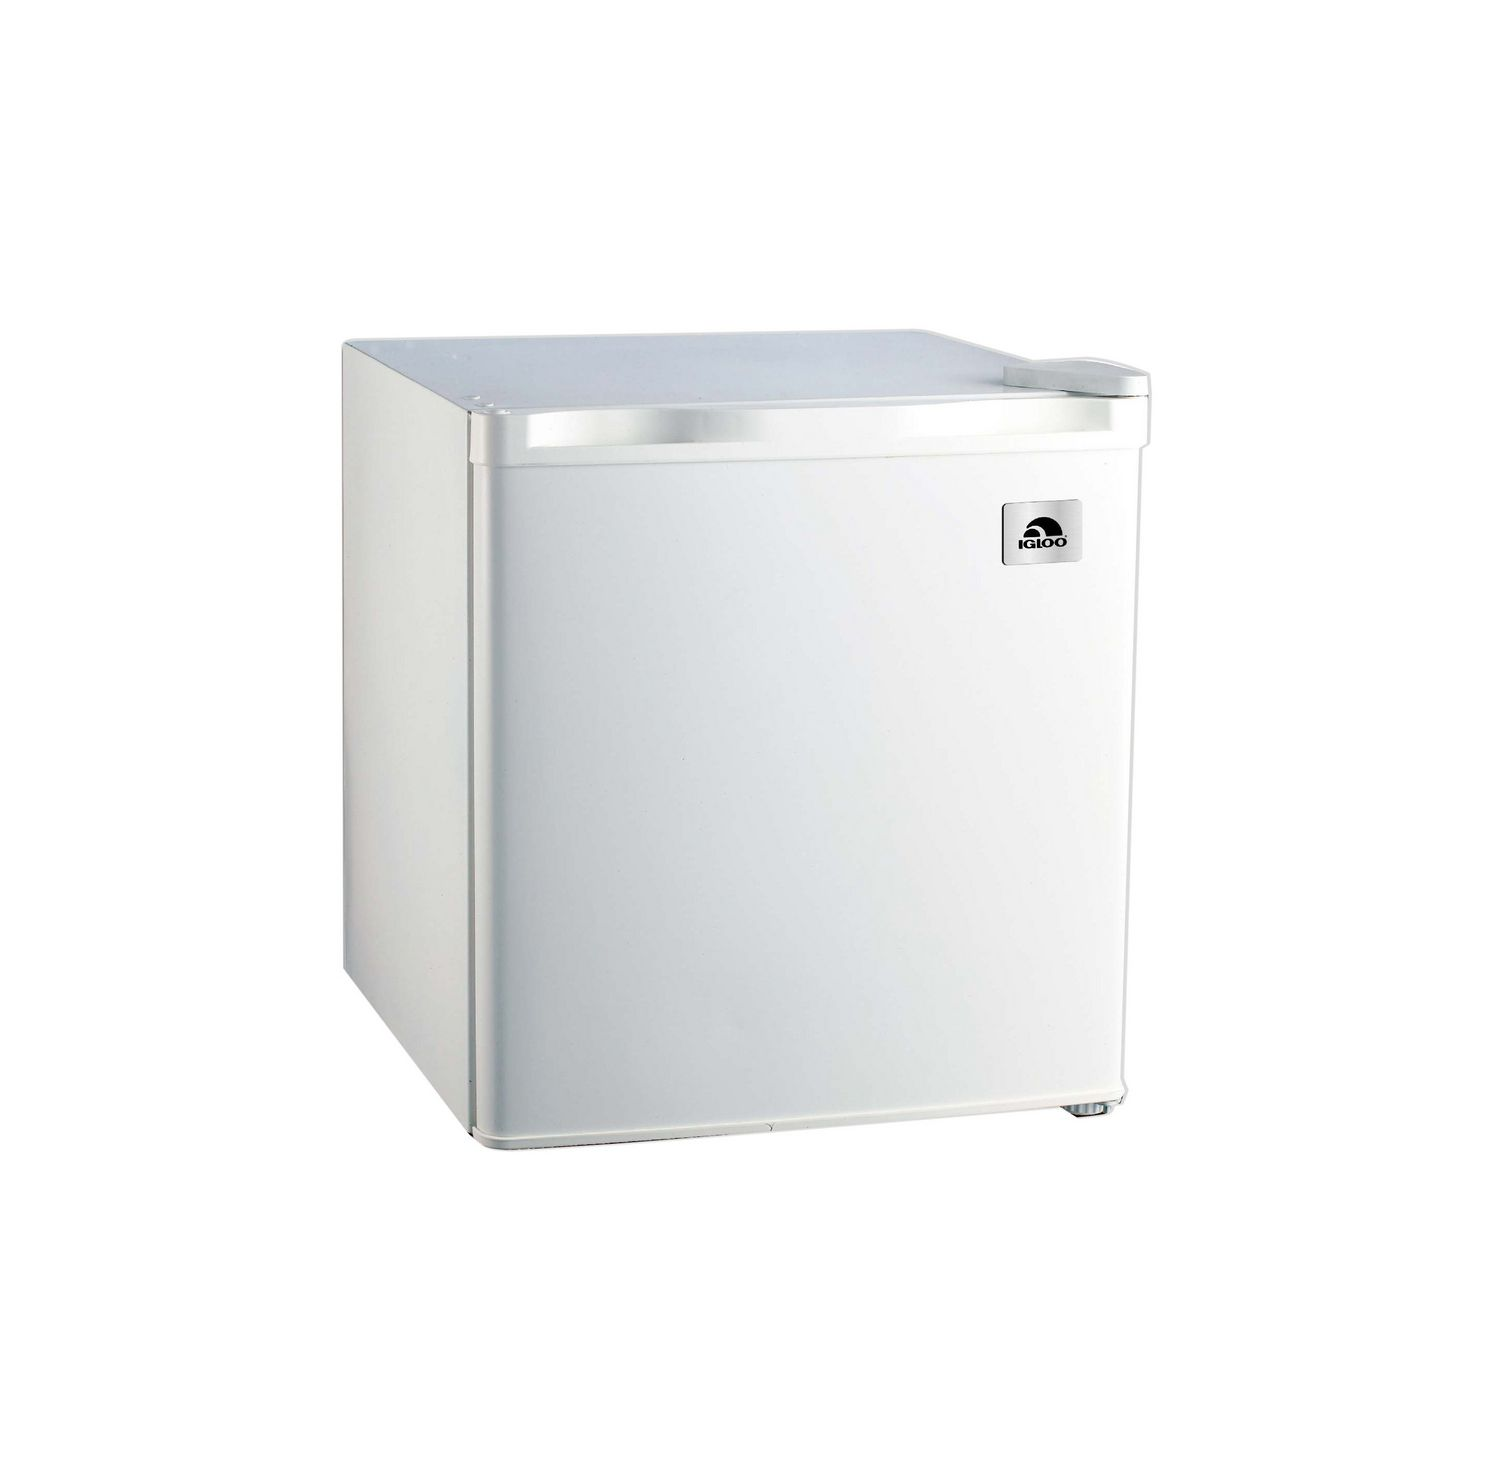 Vertical Freezers For Sale Buy Freezers Online Walmart Canada